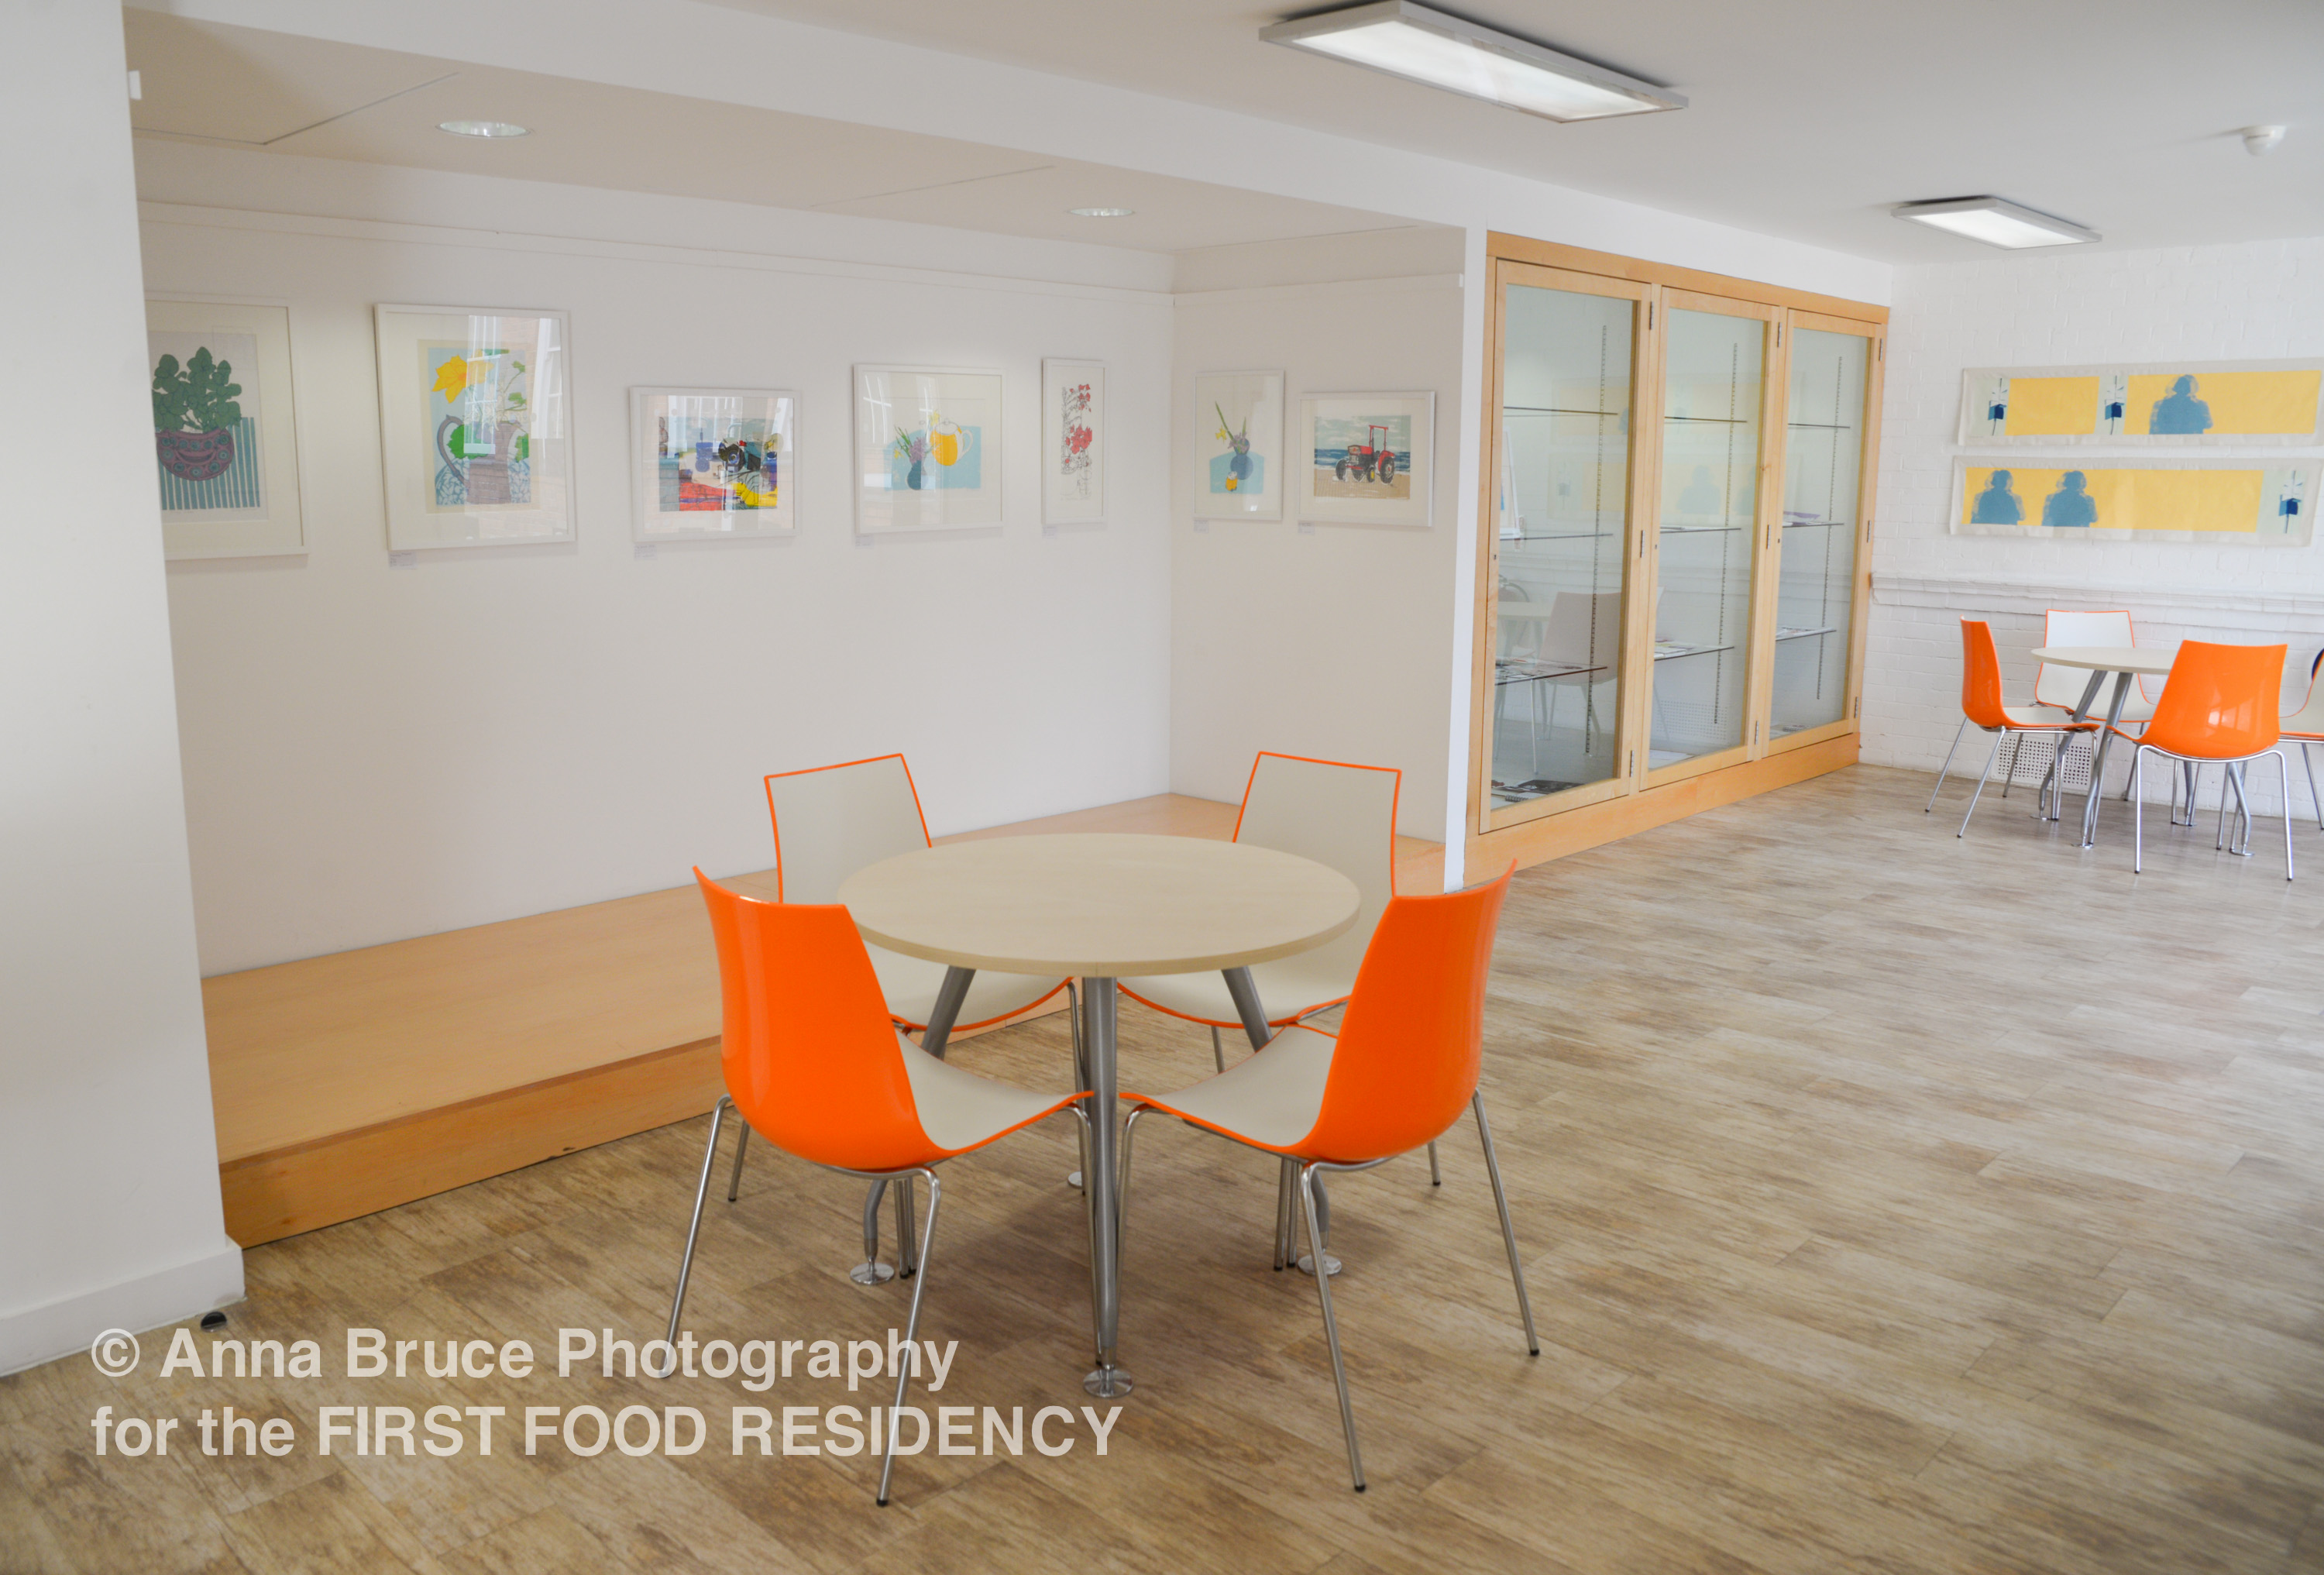 reading studios for first food residency (4 of 8)